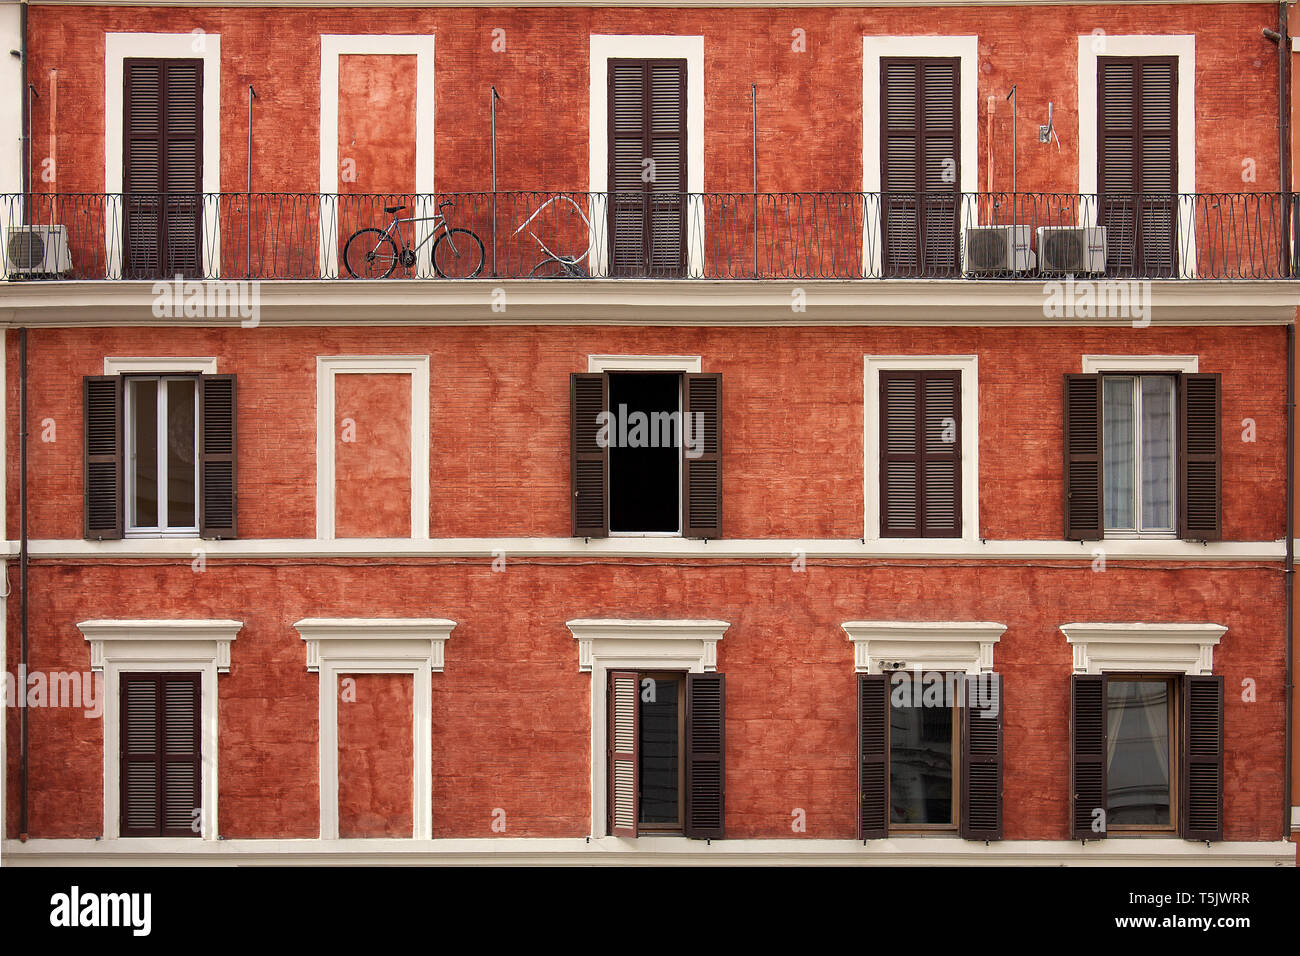 Italian Windows With Shutter Blinds And Small Exterior